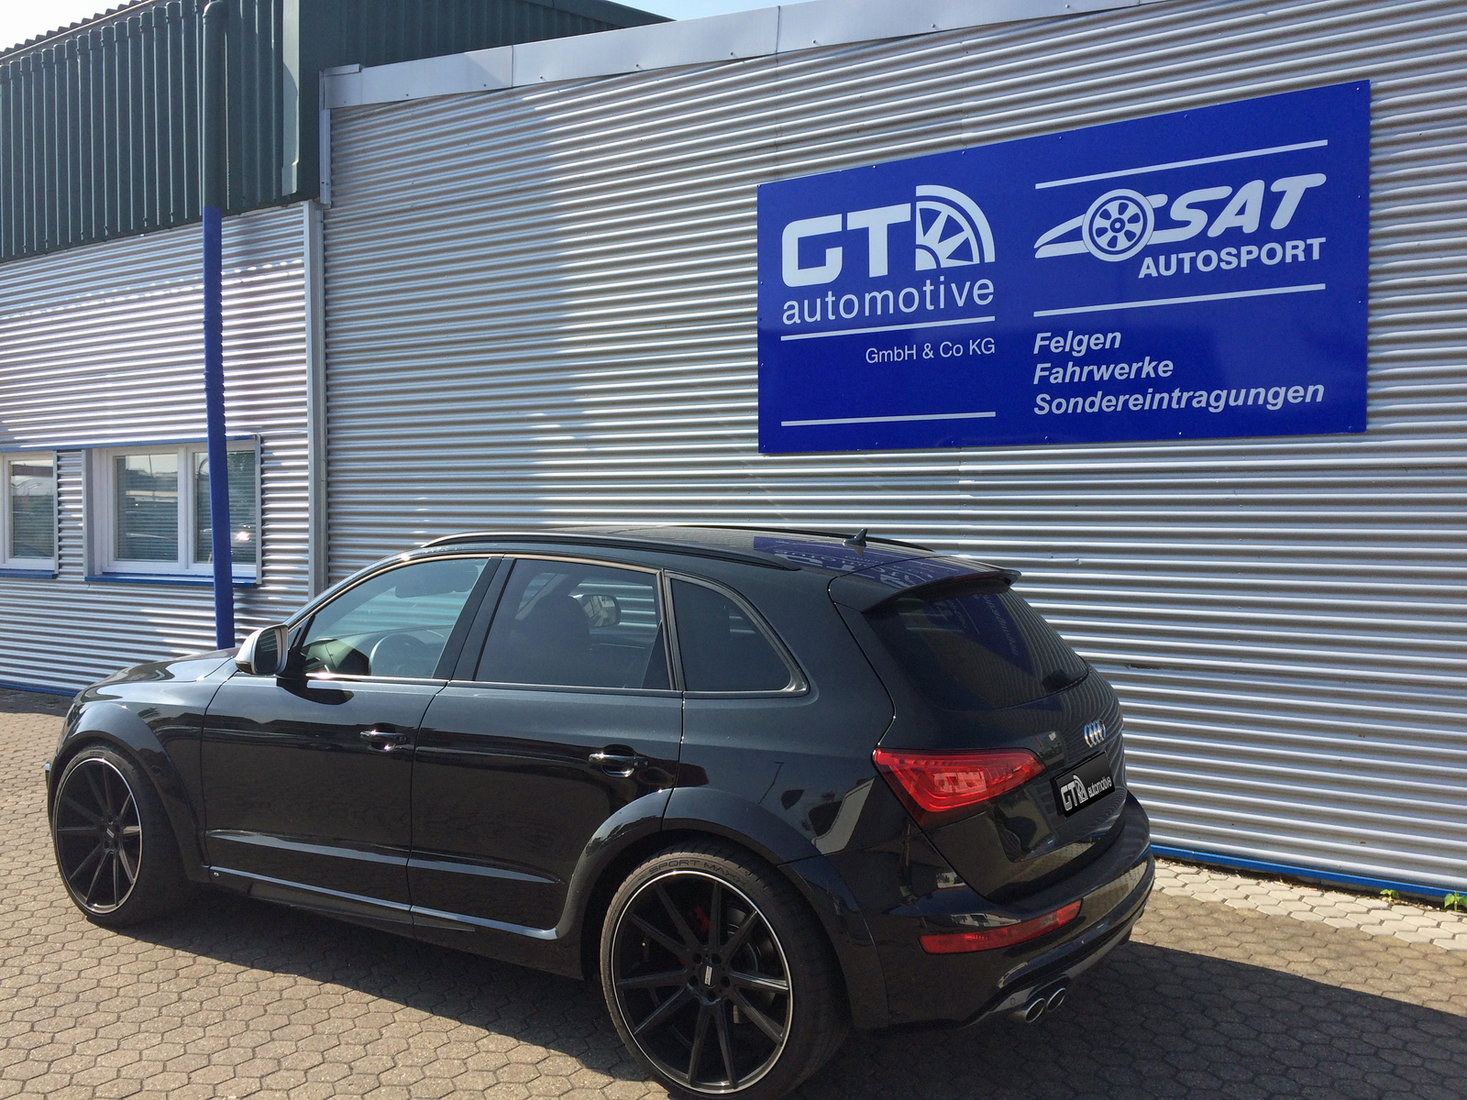 audi q5 typ 8r 8r1 galerie by gt automotive gmbh co kg. Black Bedroom Furniture Sets. Home Design Ideas